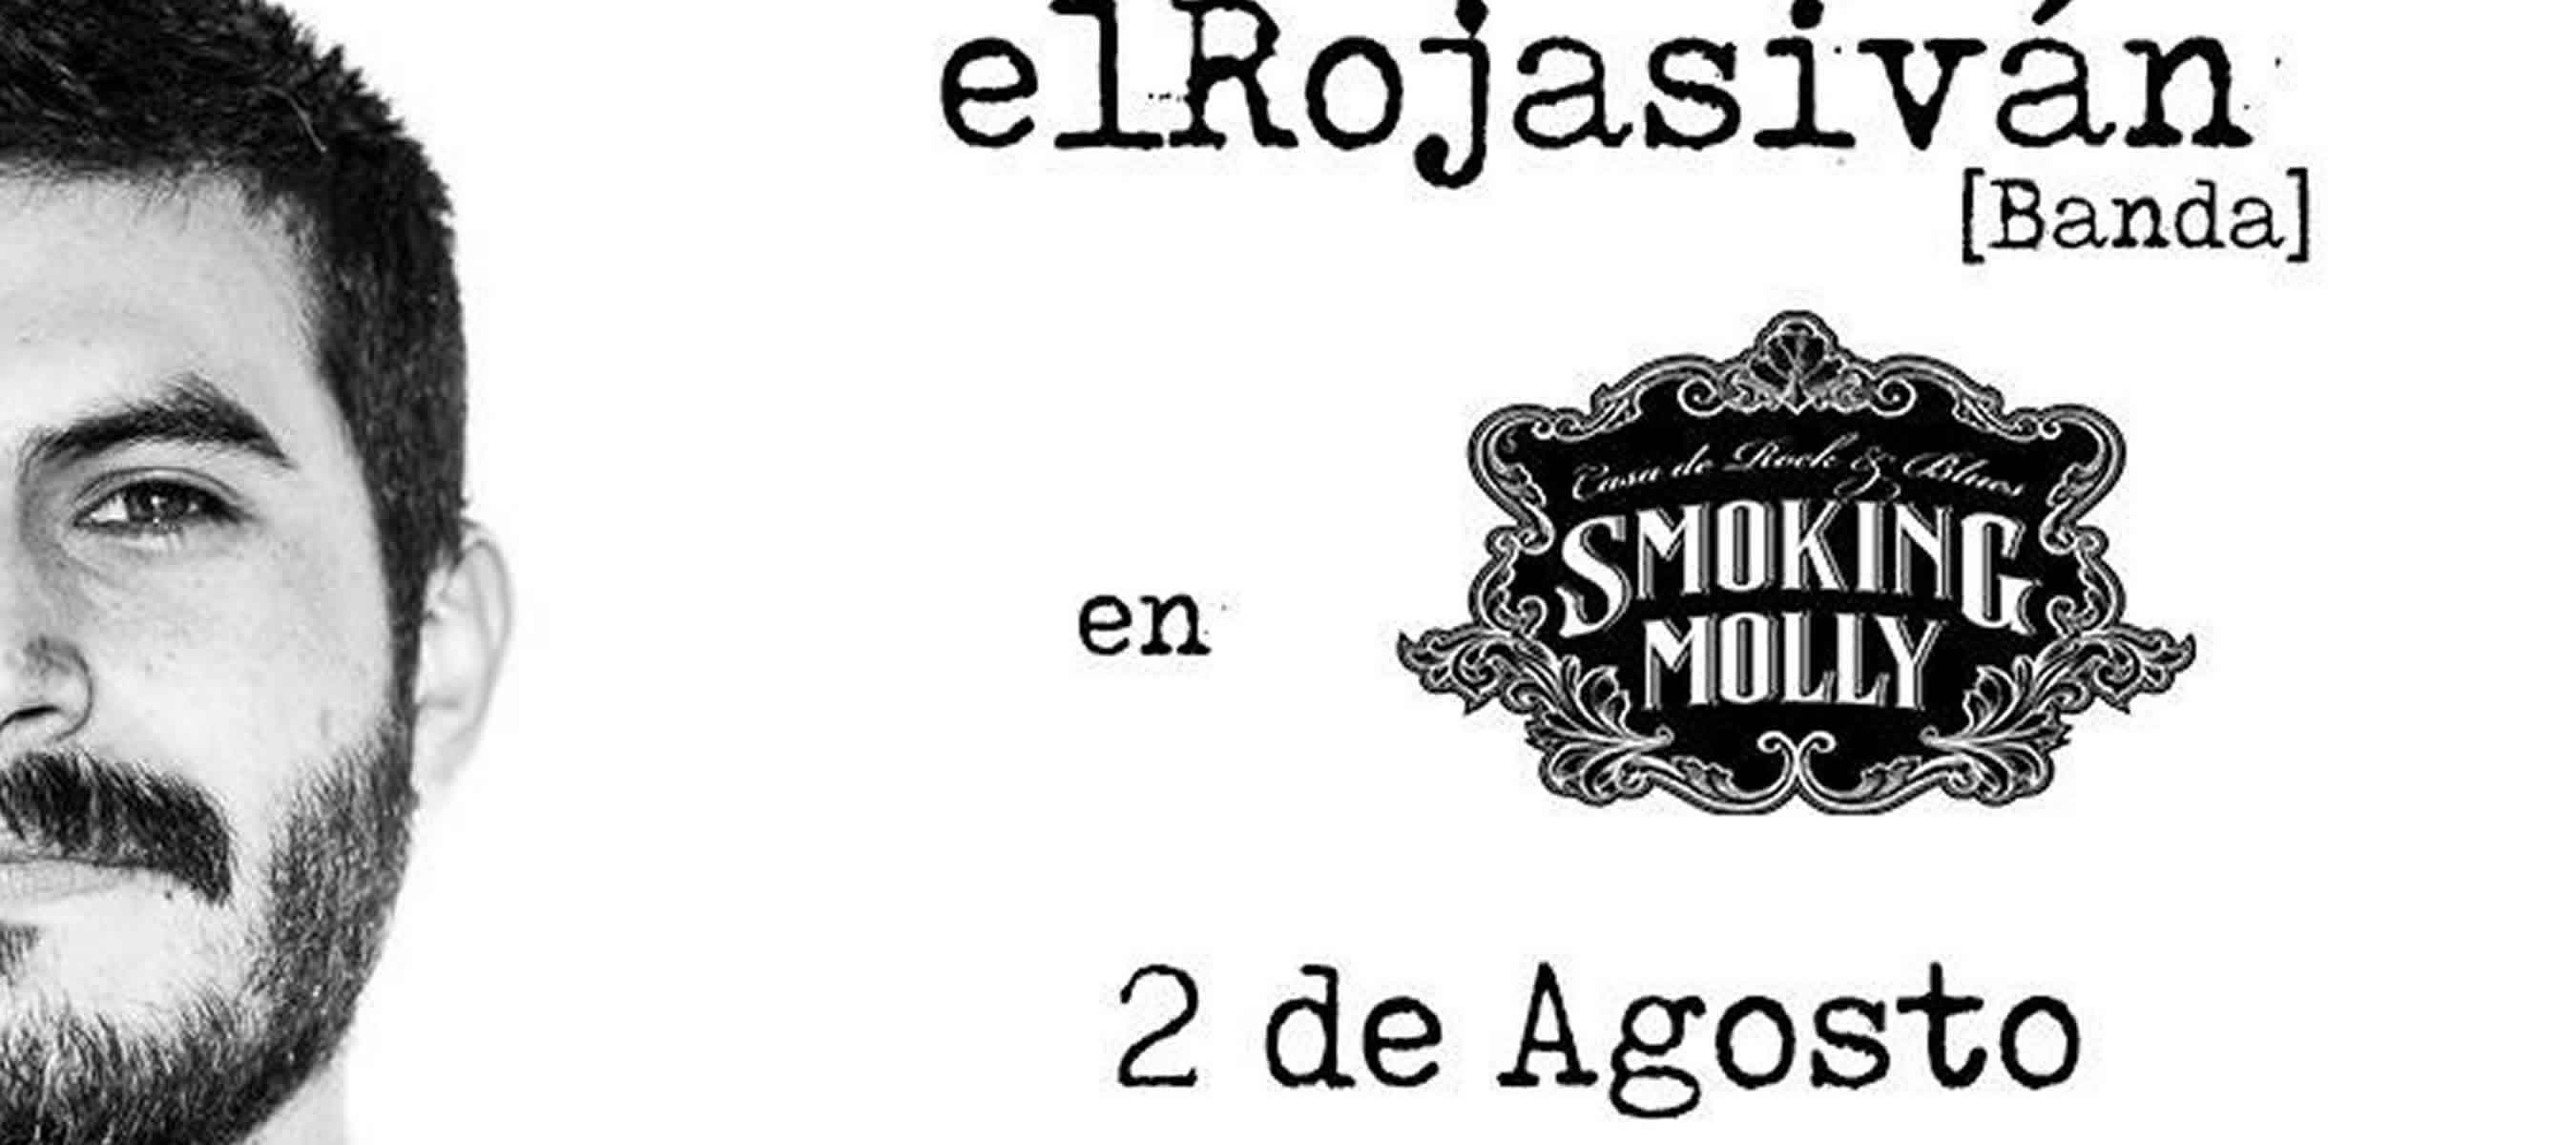 El Rojas Ivan en Smoking Molly